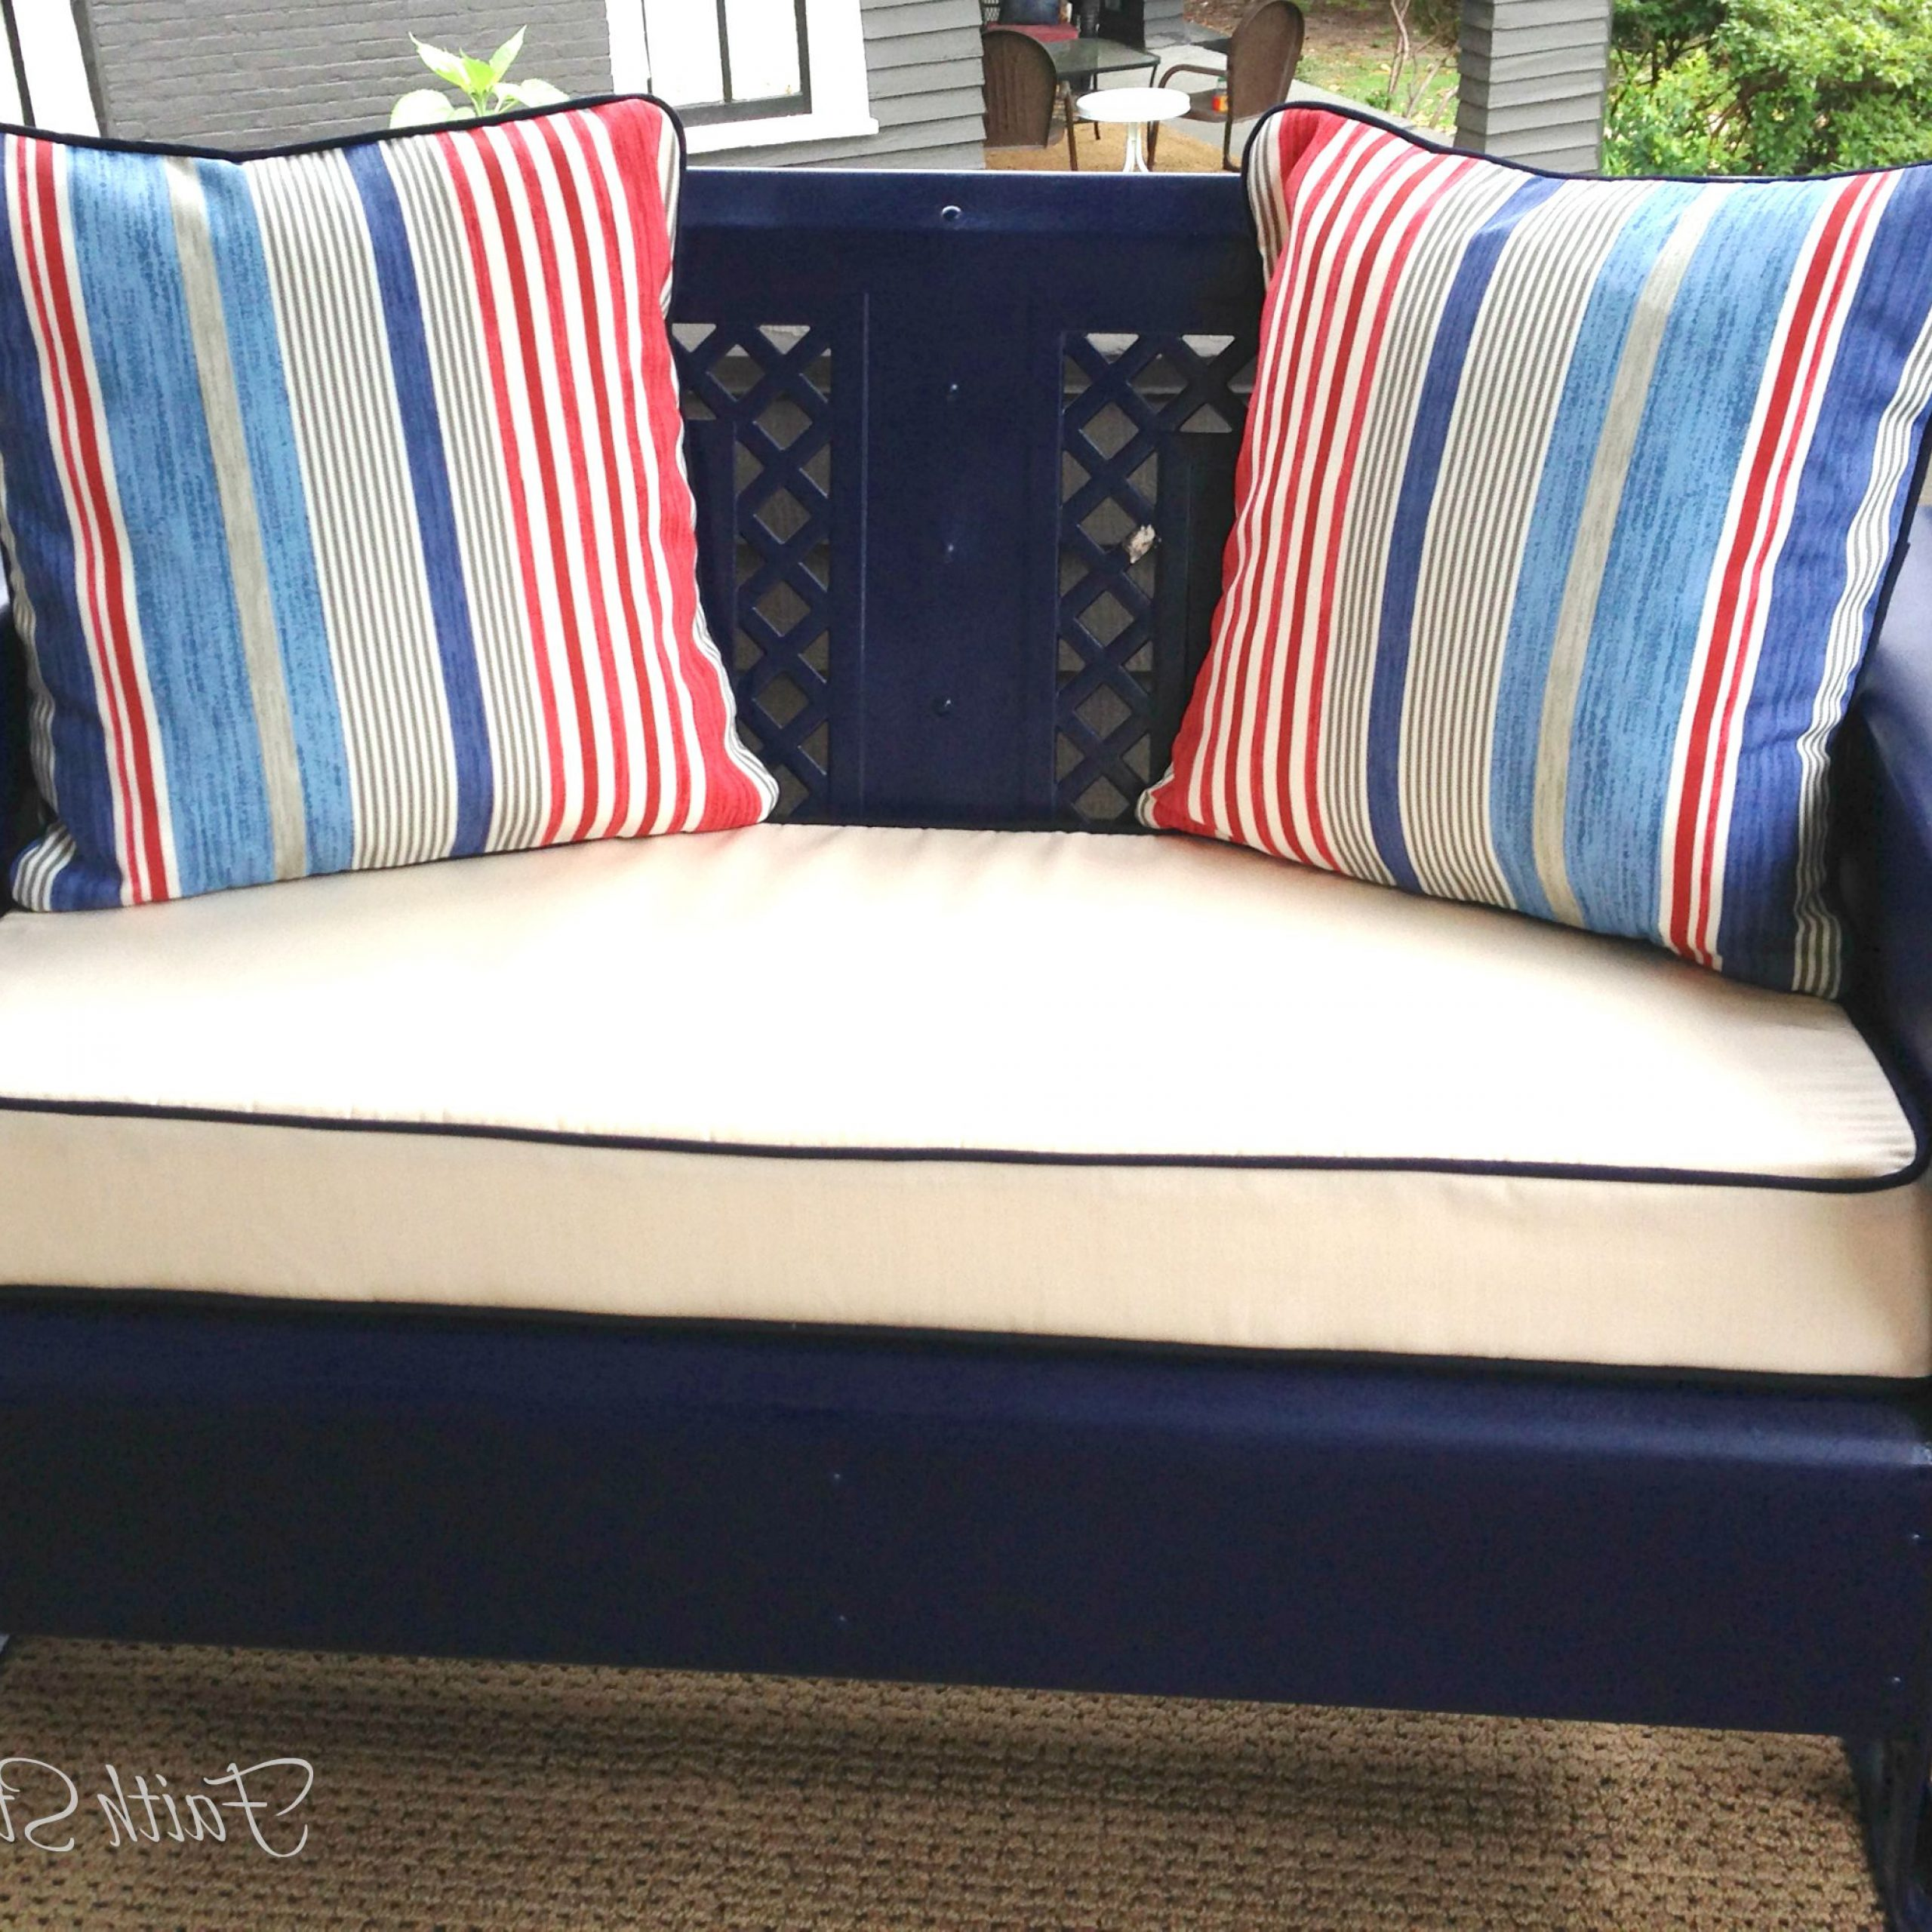 Current Furniture: Vintage Aluminum Porch Glider With Cushions For Inside Outdoor Loveseat Gliders With Cushion (View 24 of 30)